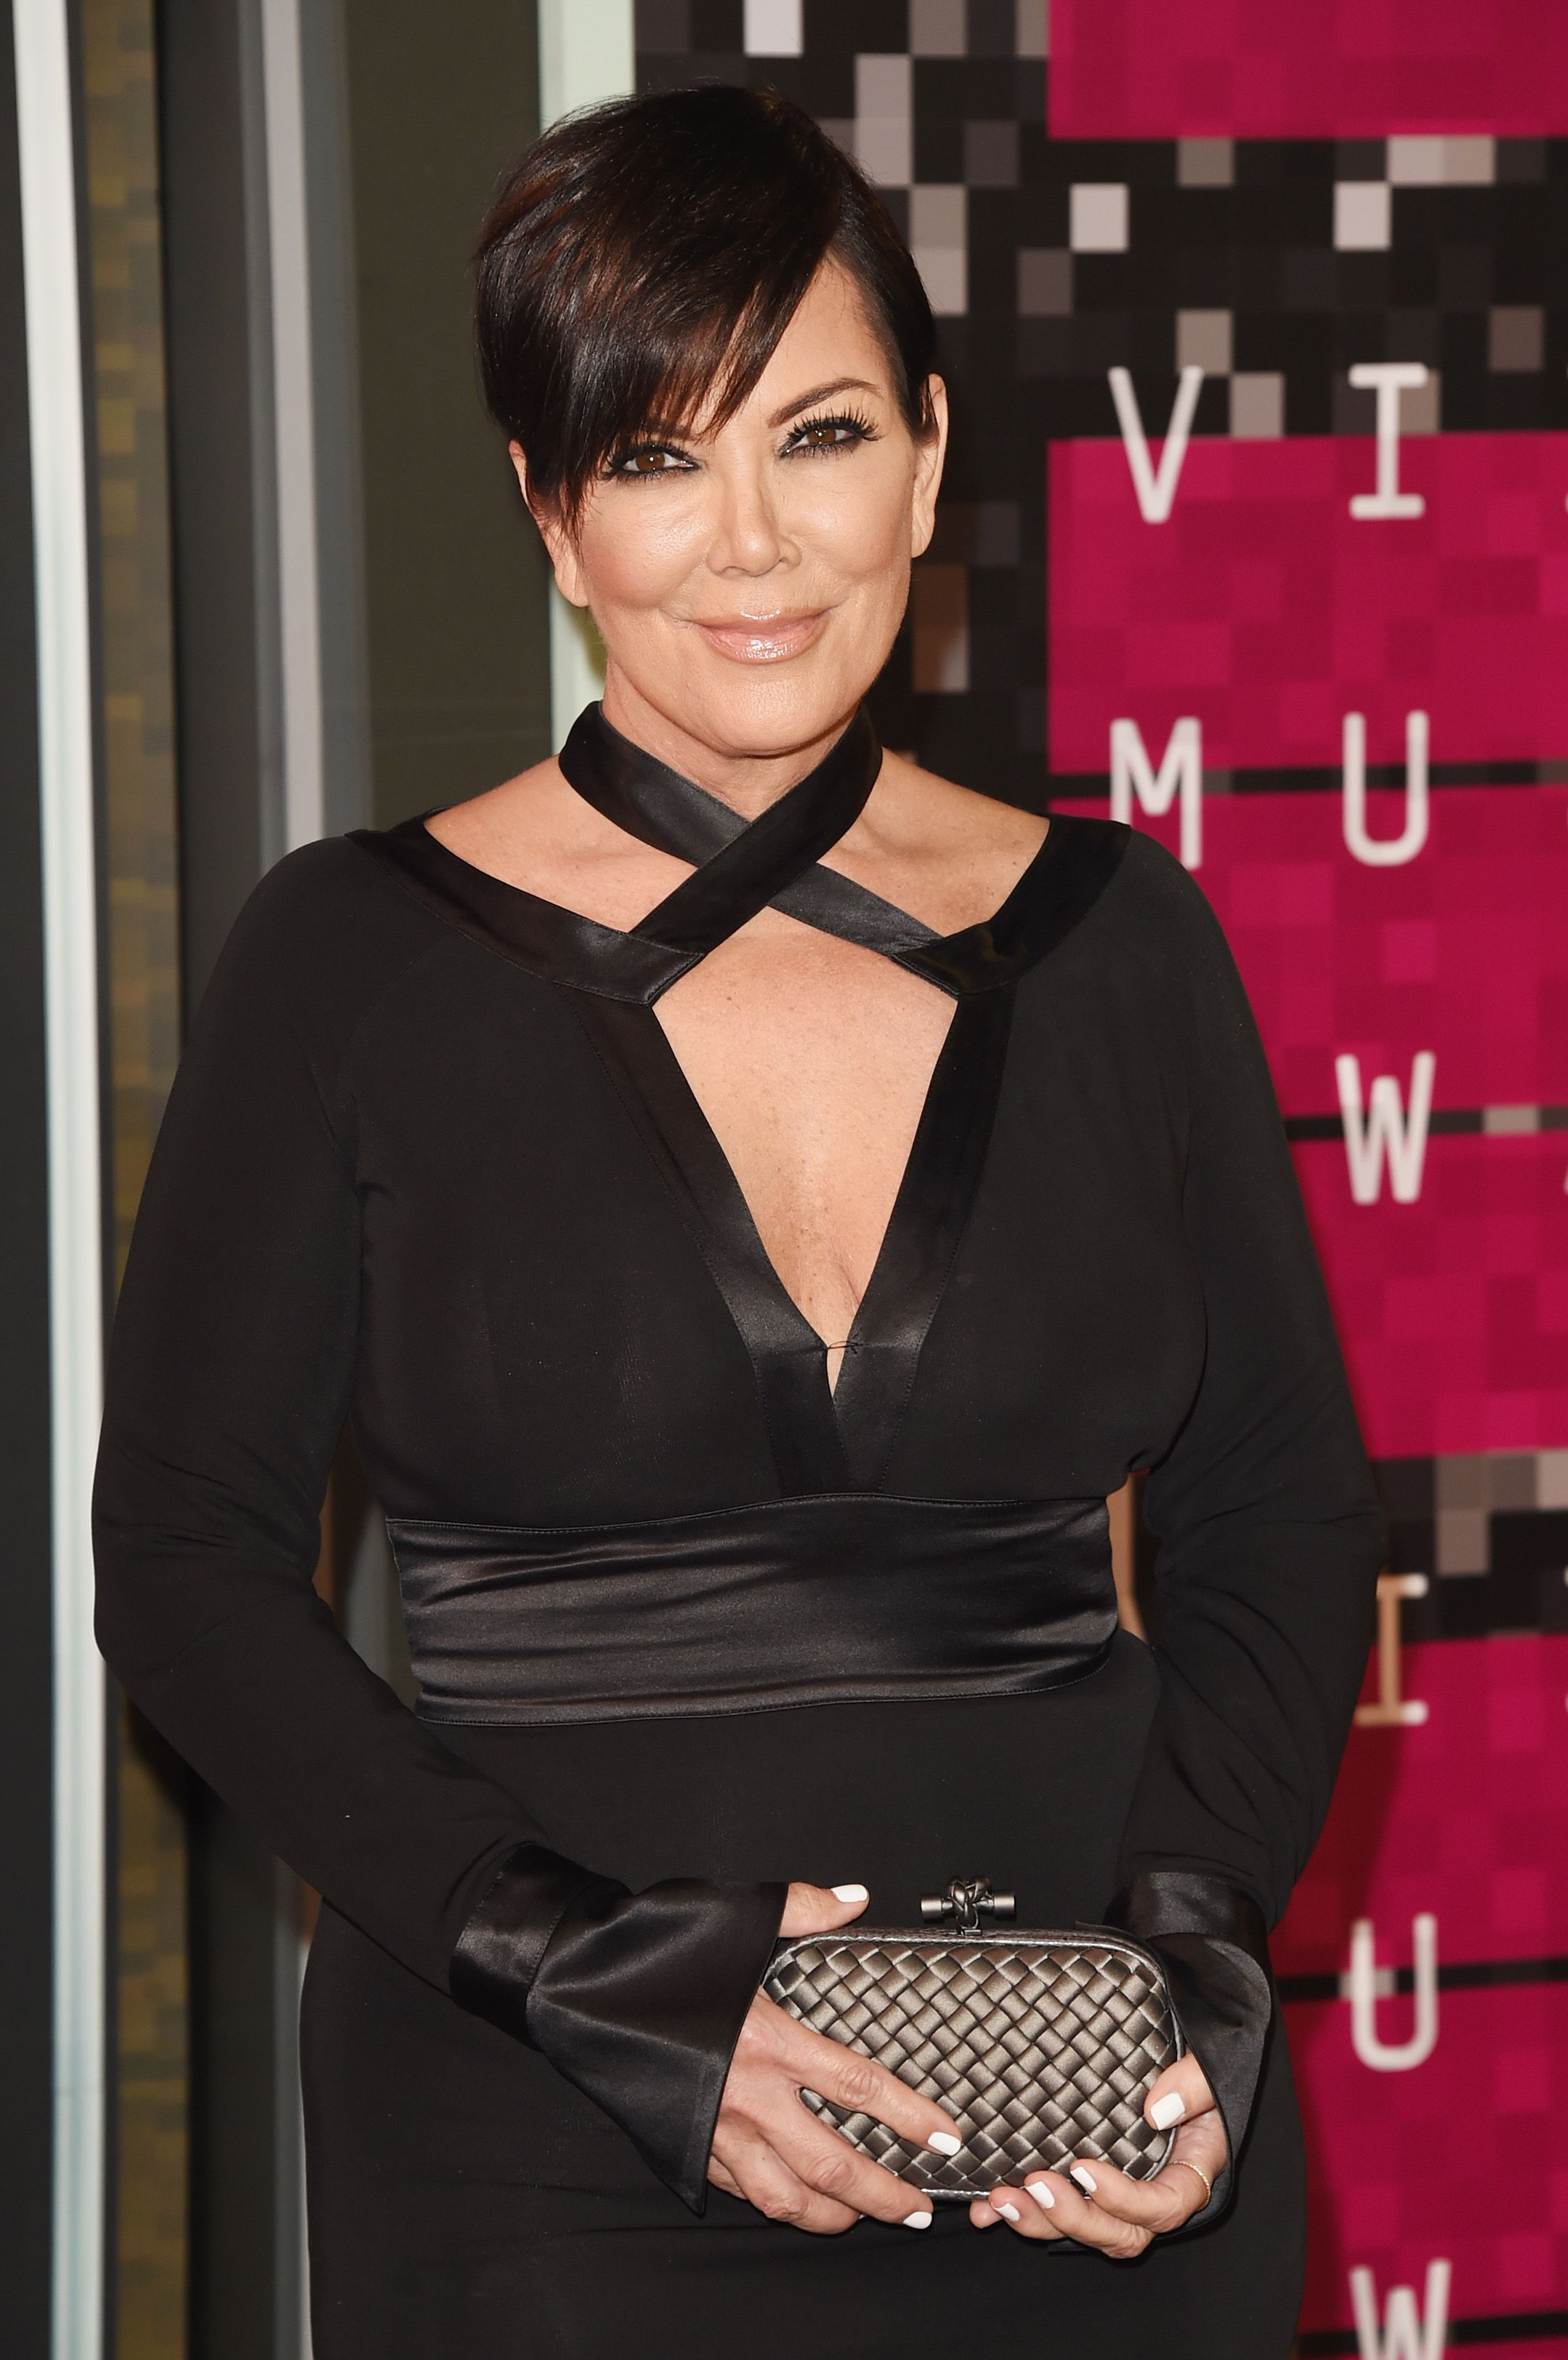 Kris Jenner Refuses to Call Caitlyn Jenner By Her New Name foto